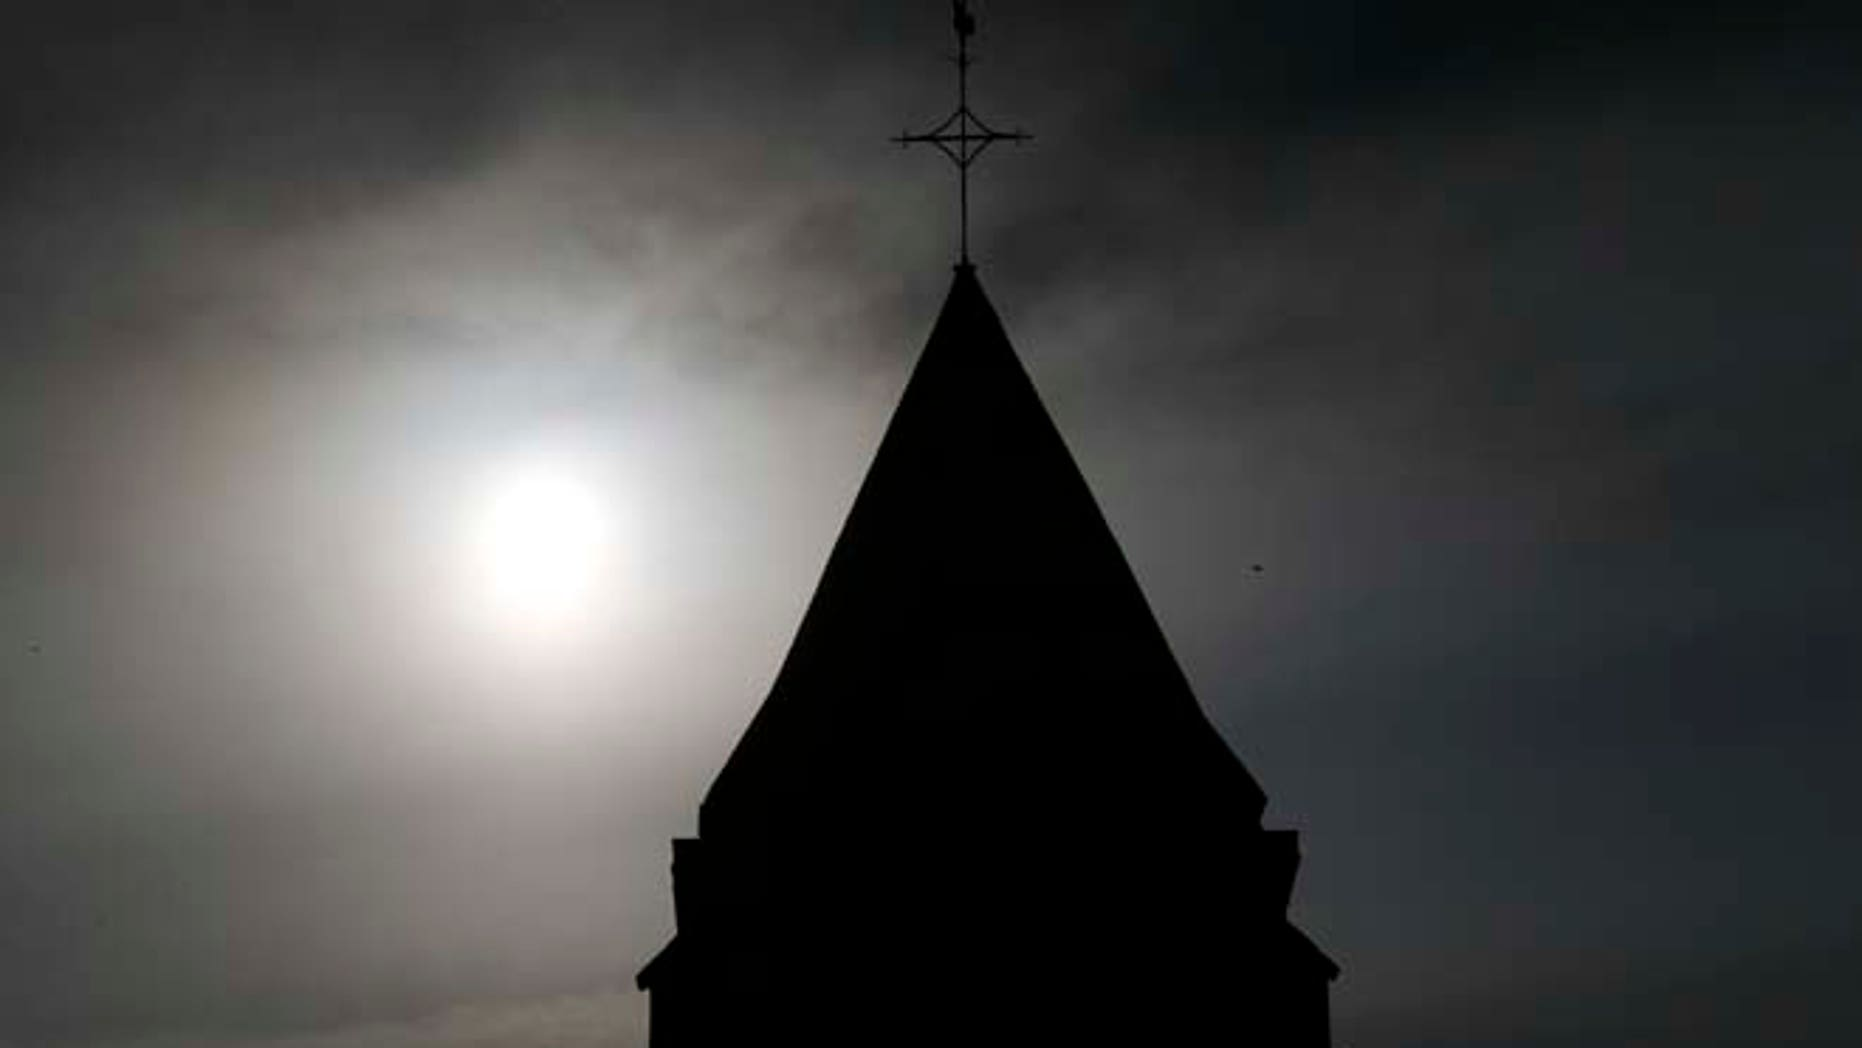 A view shows the bell tower of the church in Saint-Etienne-du-Rouvray near Rouen in Normandy, France